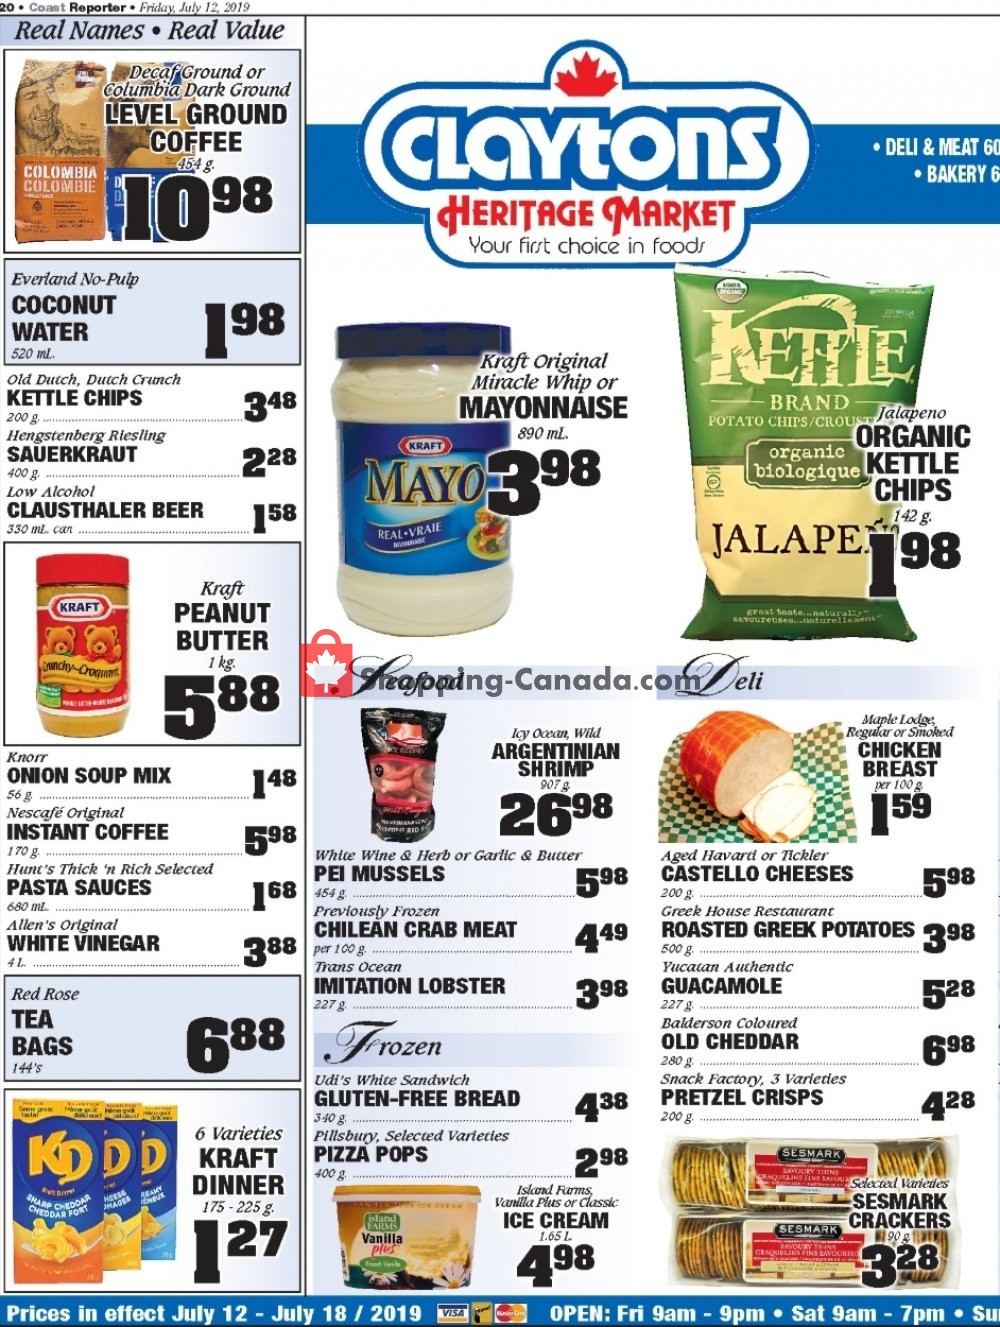 Flyer Claytons Heritage Market Canada - from Friday July 12, 2019 to Thursday July 18, 2019